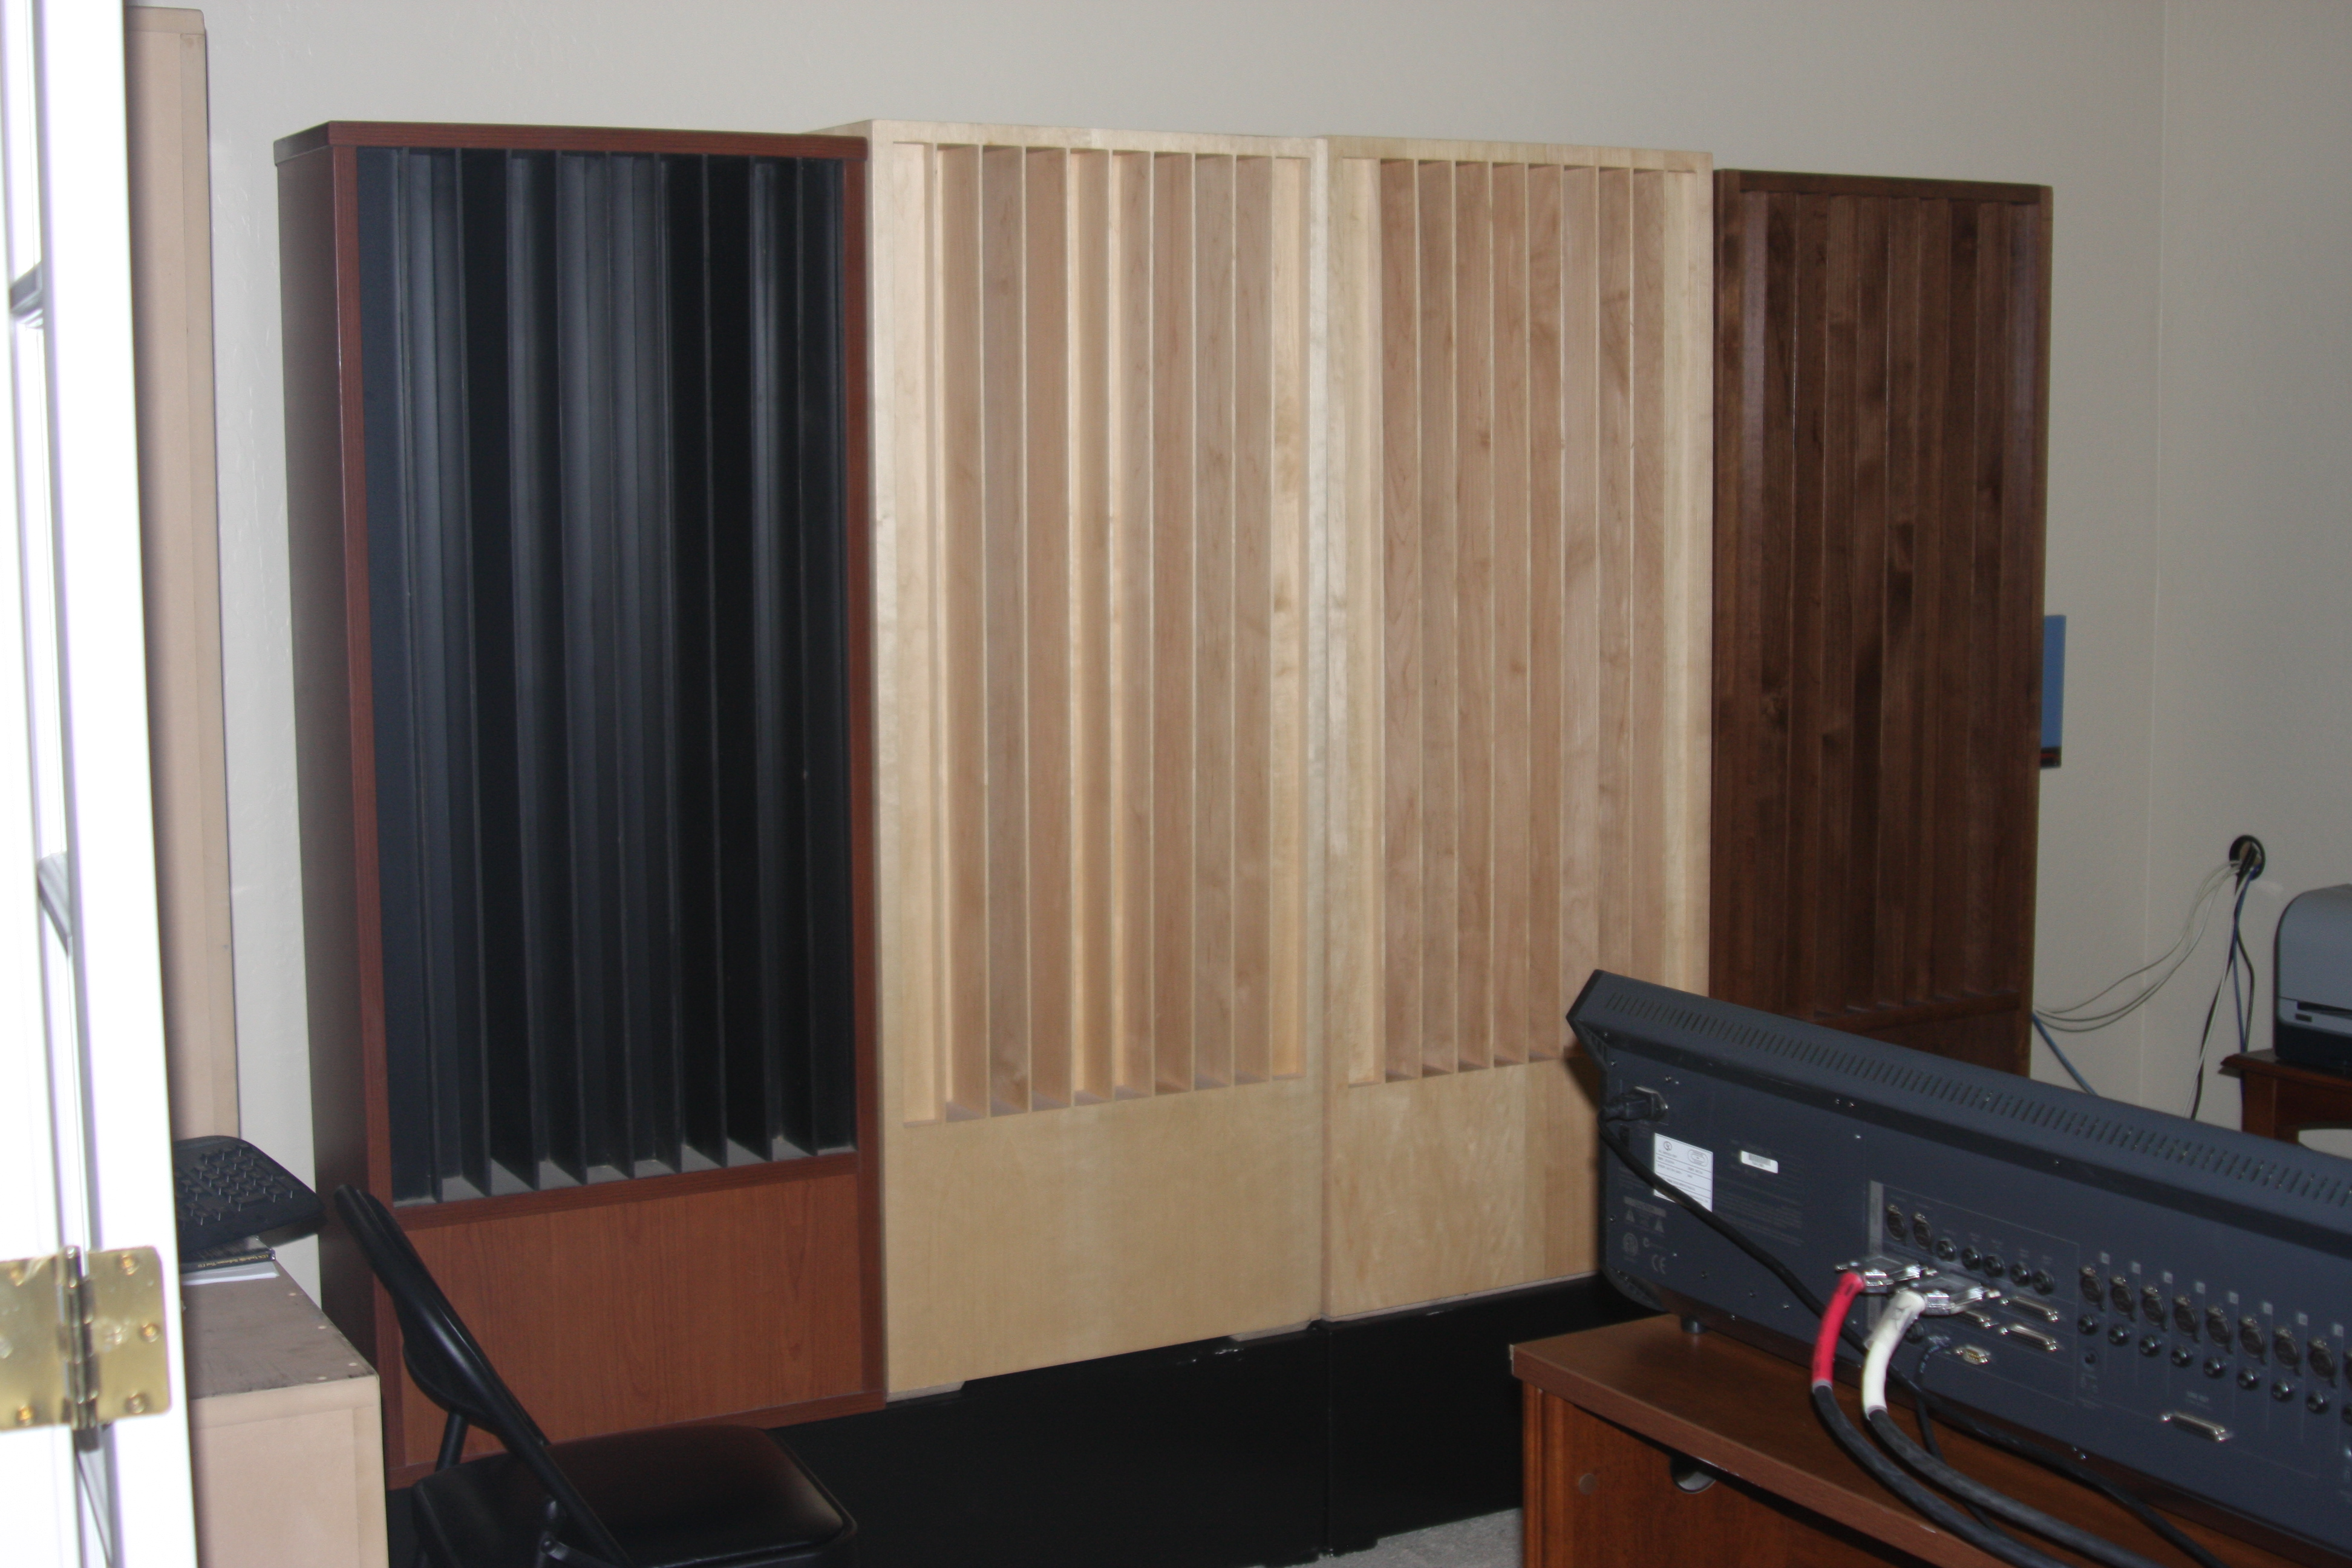 sound artistic decor tips a and soundproof were proof build to design photo color trying if room creative you